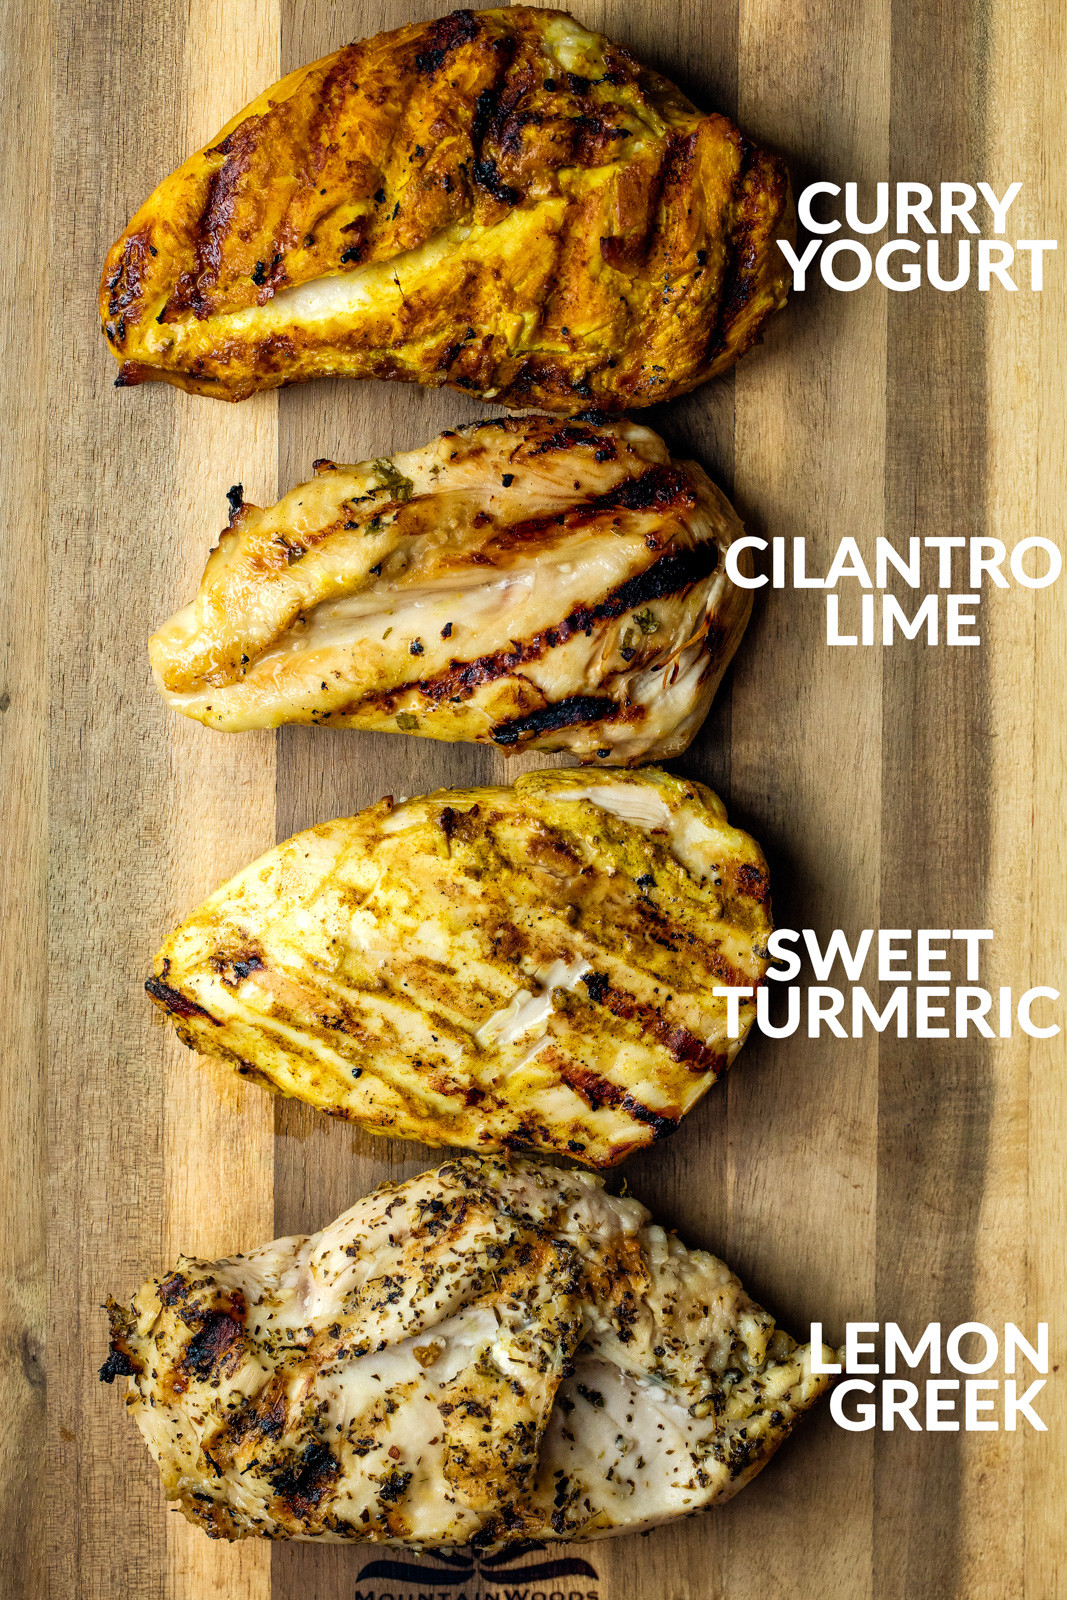 Healthy Chicken Marinades  4 Easy Chicken Marinades Living Lean & Clean with Just